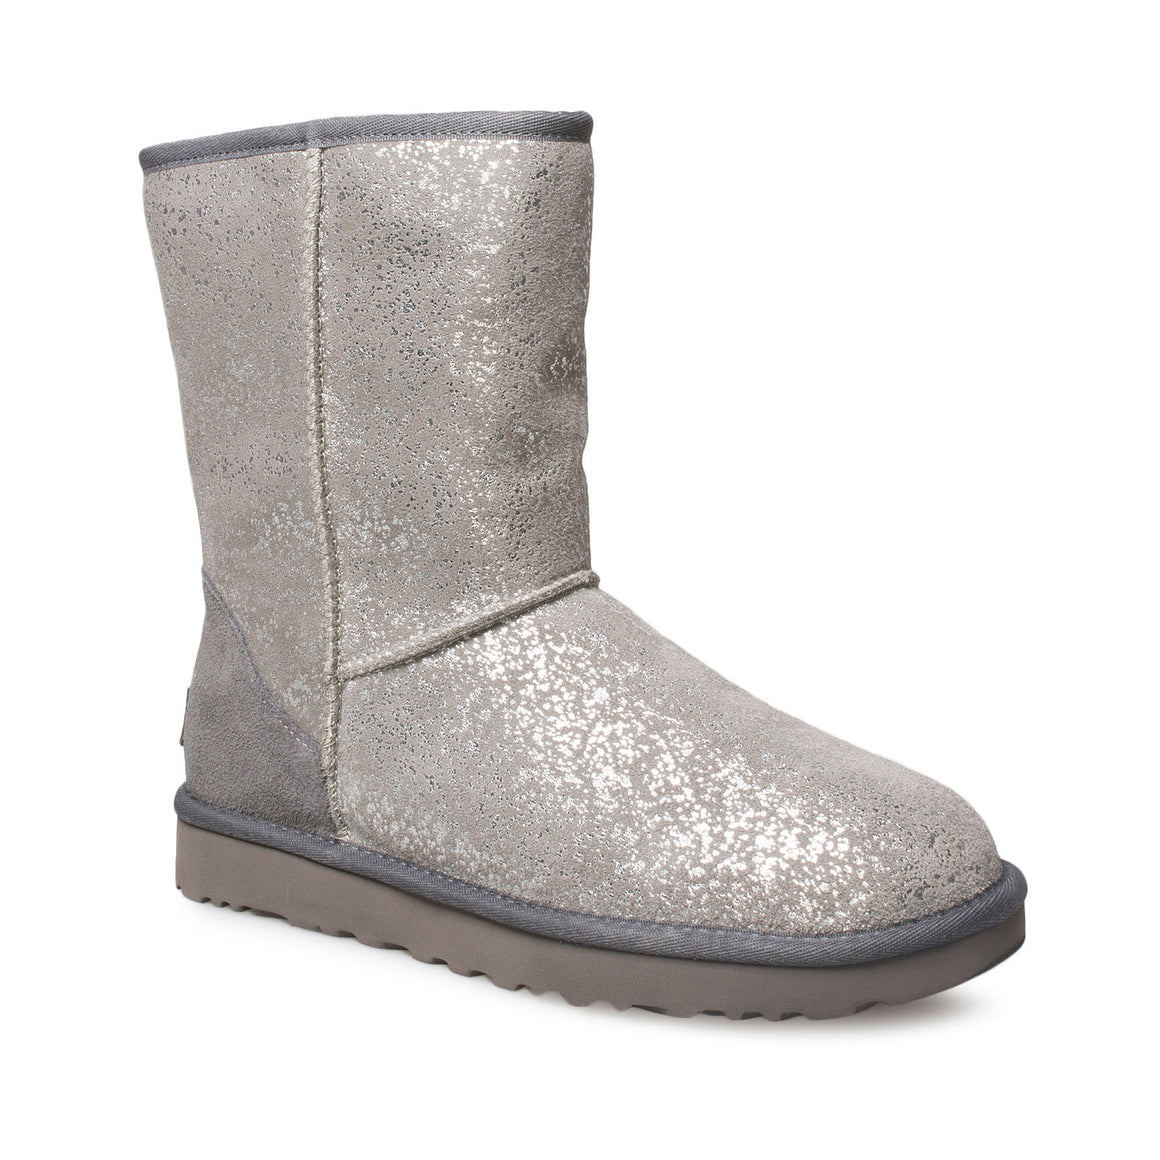 UGG Classic Short Foil Glam Grey Boots - Women's